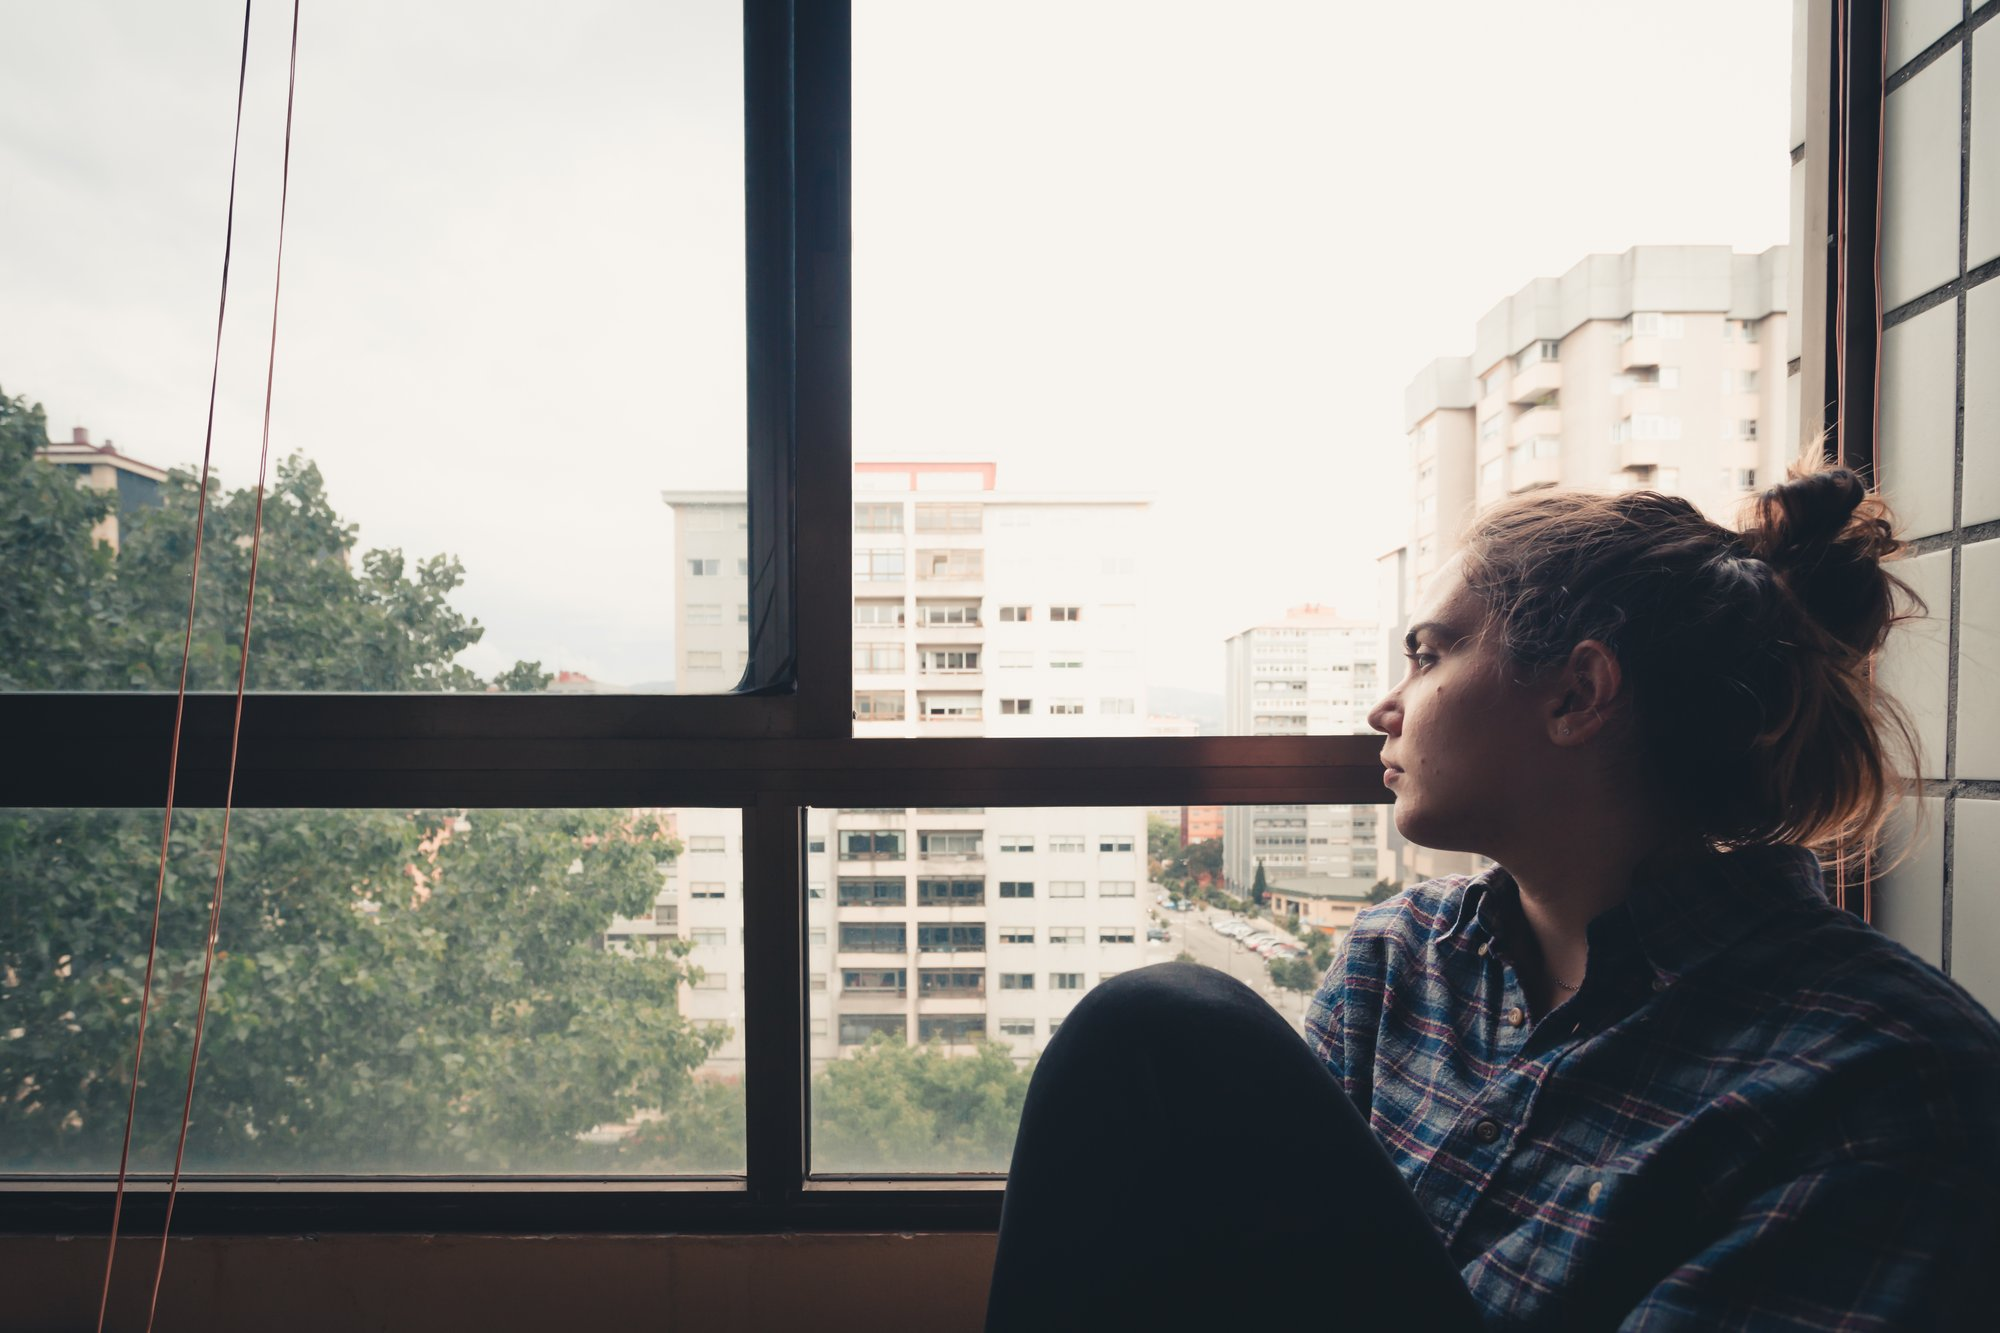 woman looks out a window to the view below 女人向窗外眺望下面的景色